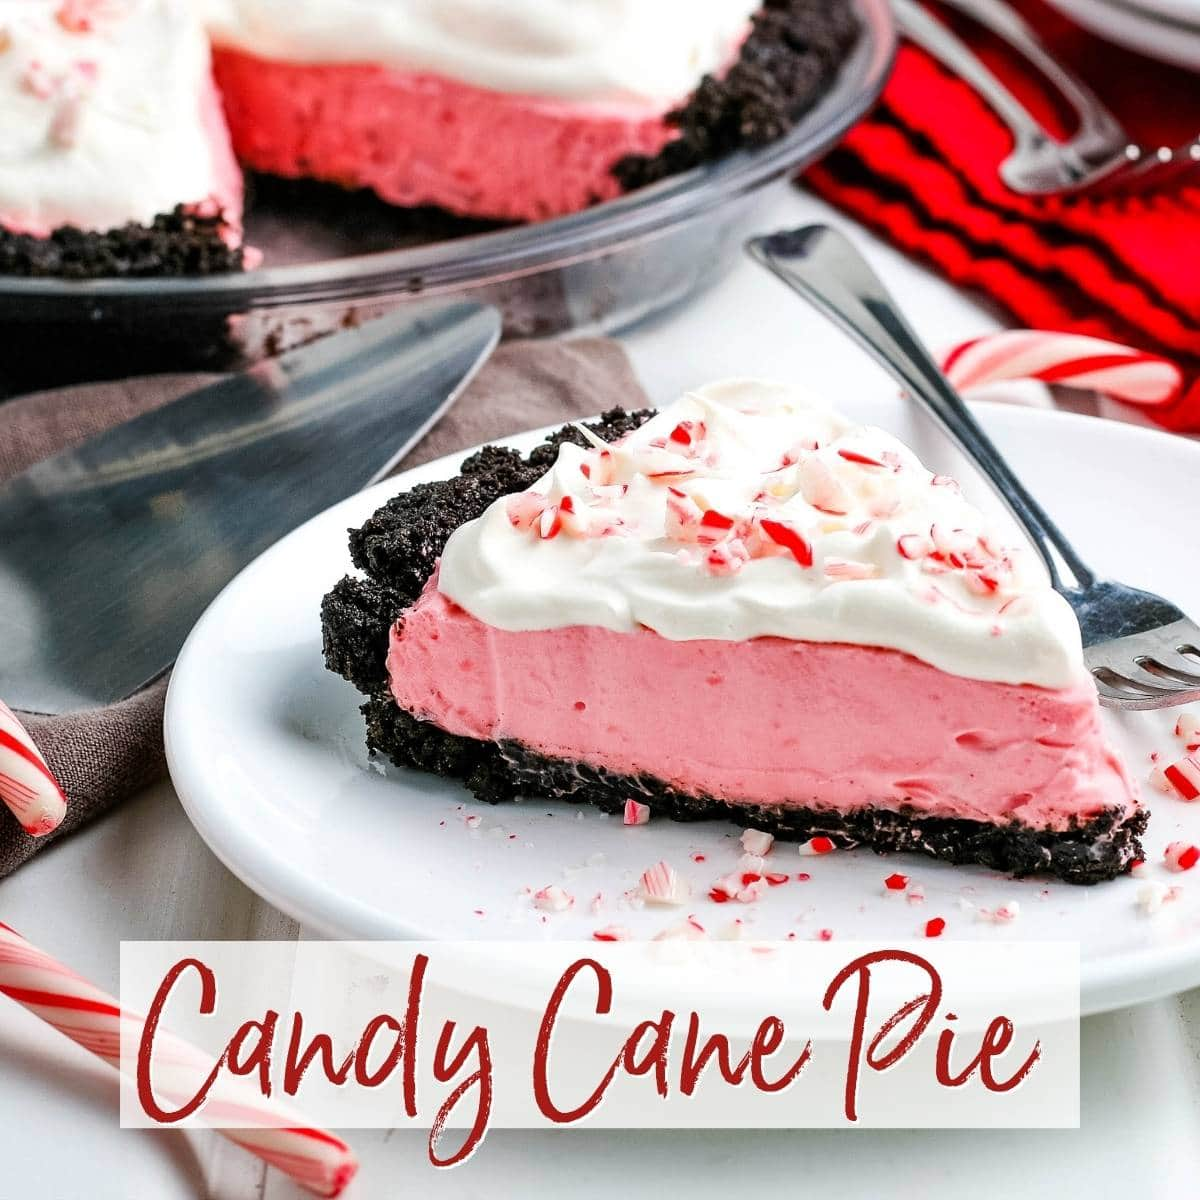 Slice of Candy Cane Pie with crushed candy canes on a whit plate with graphic overlay